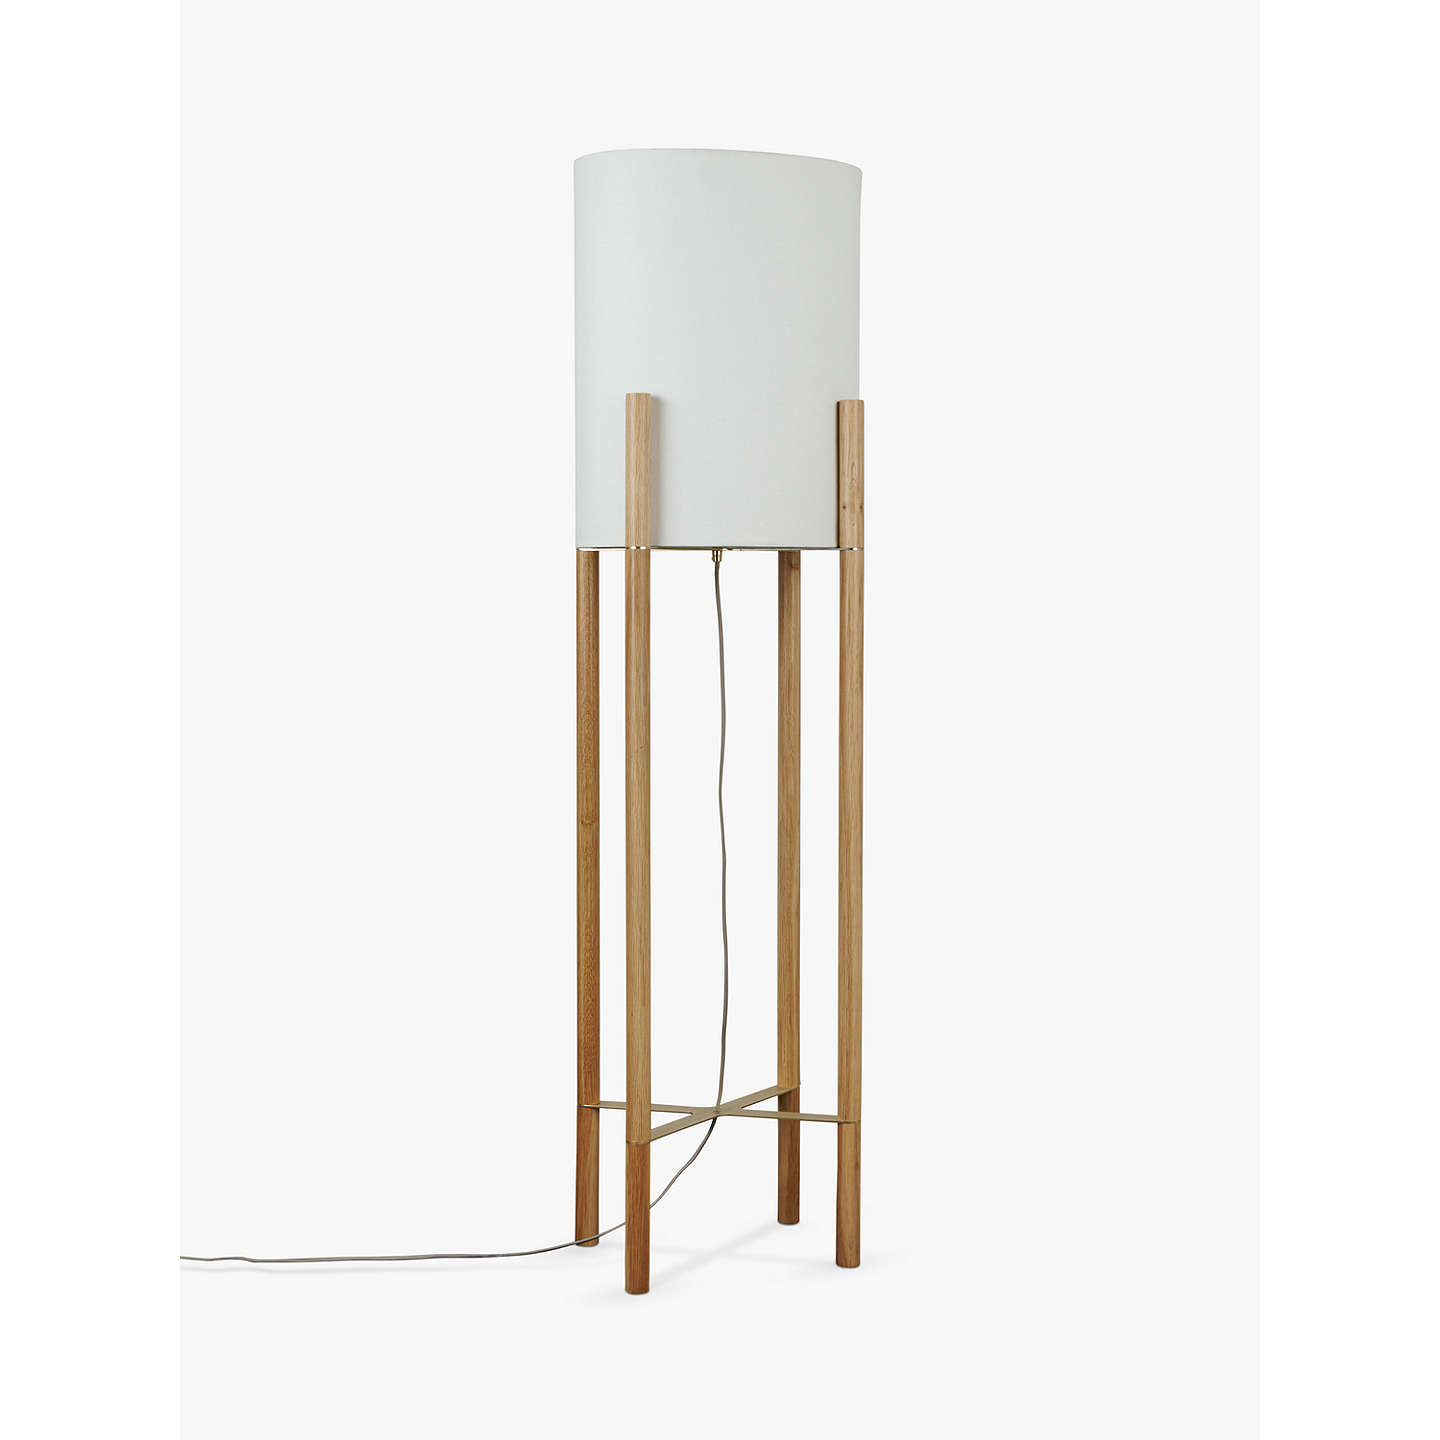 Design project by john lewis no031 oval shade floor lamp oak at buydesign project by john lewis no031 oval shade floor lamp oak online at mozeypictures Gallery